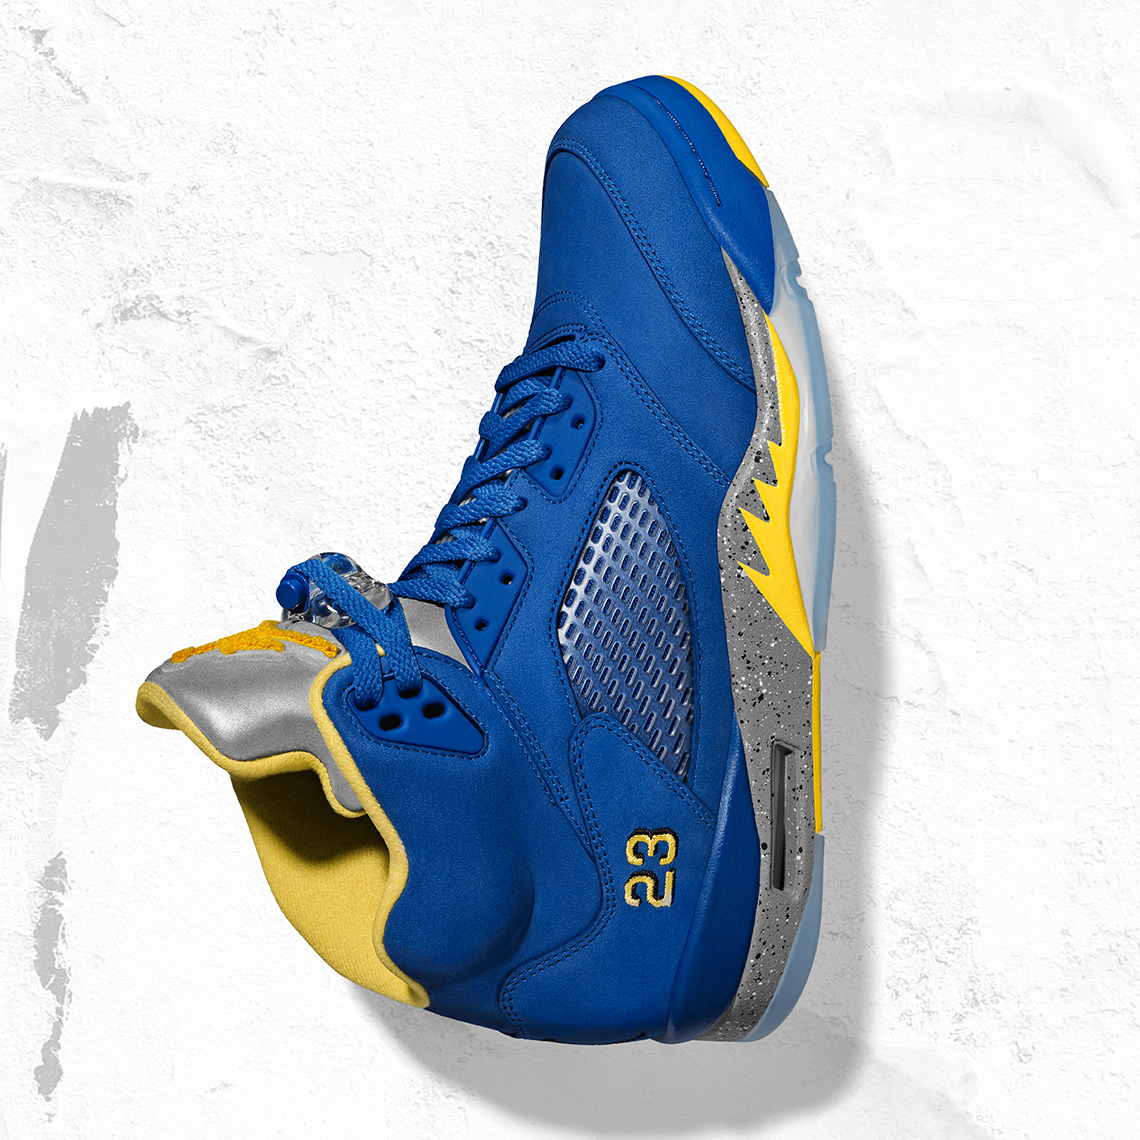 new product 7dd6a 01166 Get the scoop on all eight kicks below, and look for them to roll out over  February, culminating on gameday  February 17th. Advertisement. Air Jordan  ...